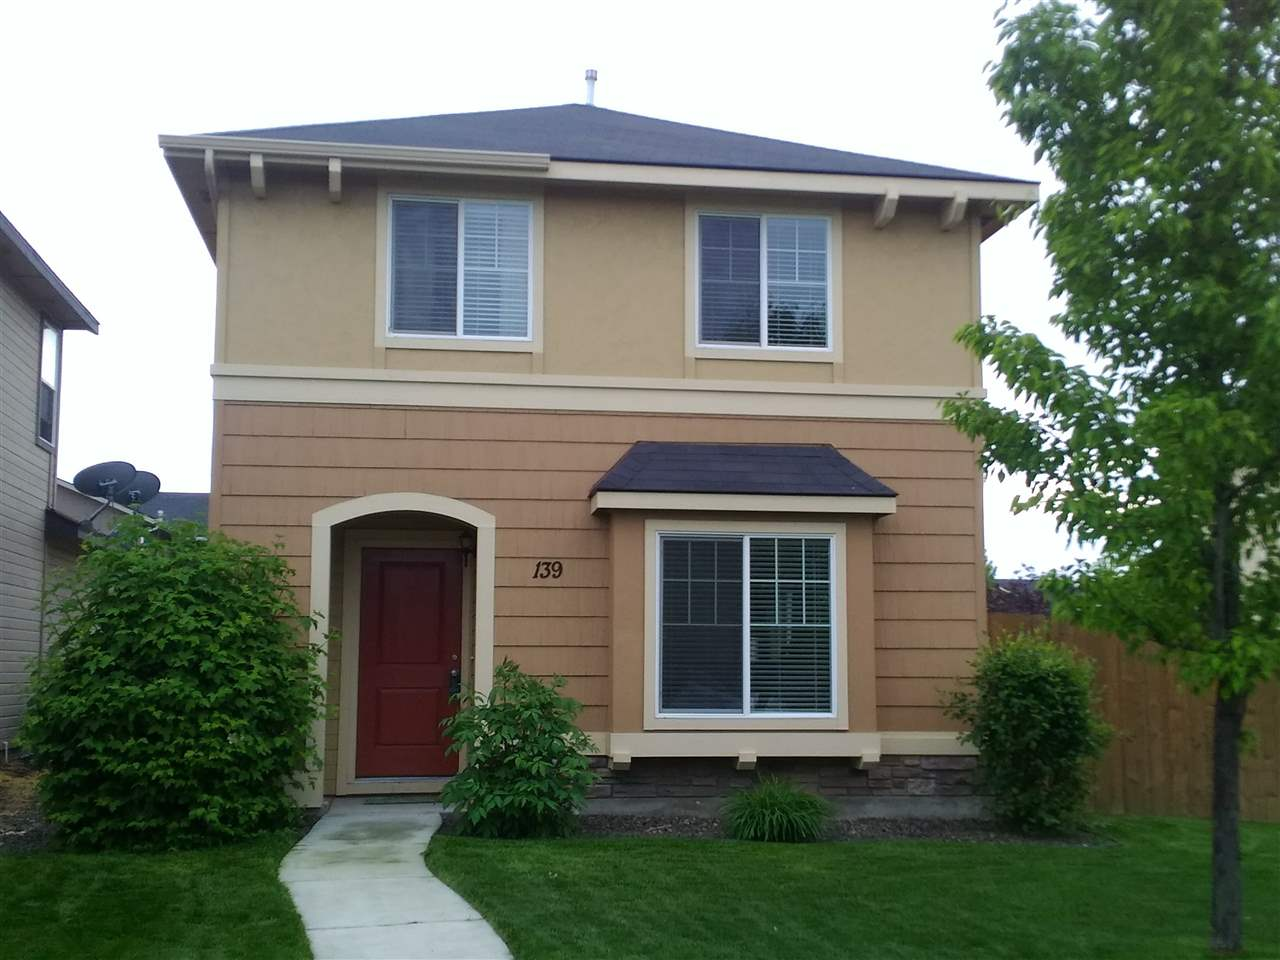 139 W LAVA FALLS DR,Meridian,Idaho 83646-5705,3 Bedrooms Bedrooms,2.5 BathroomsBathrooms,Residential,139 W LAVA FALLS DR,98692413